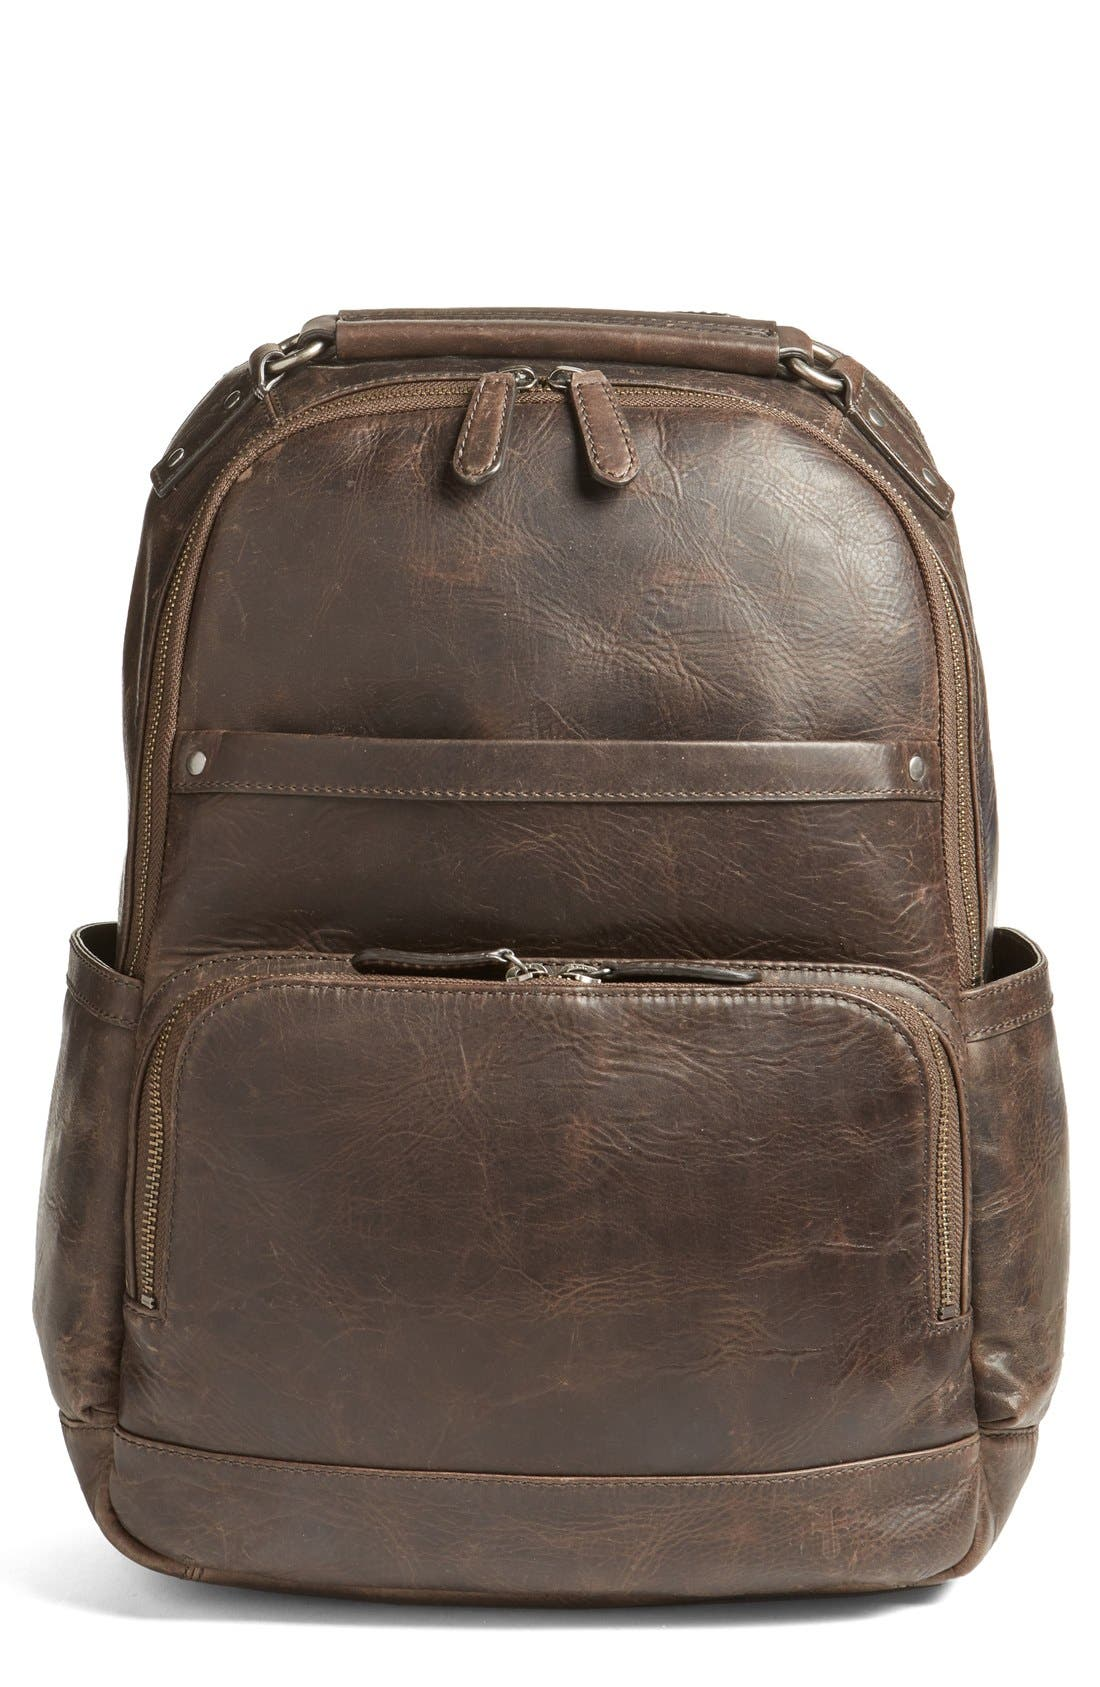 'Logan' Leather Backpack,                             Main thumbnail 1, color,                             SLATE